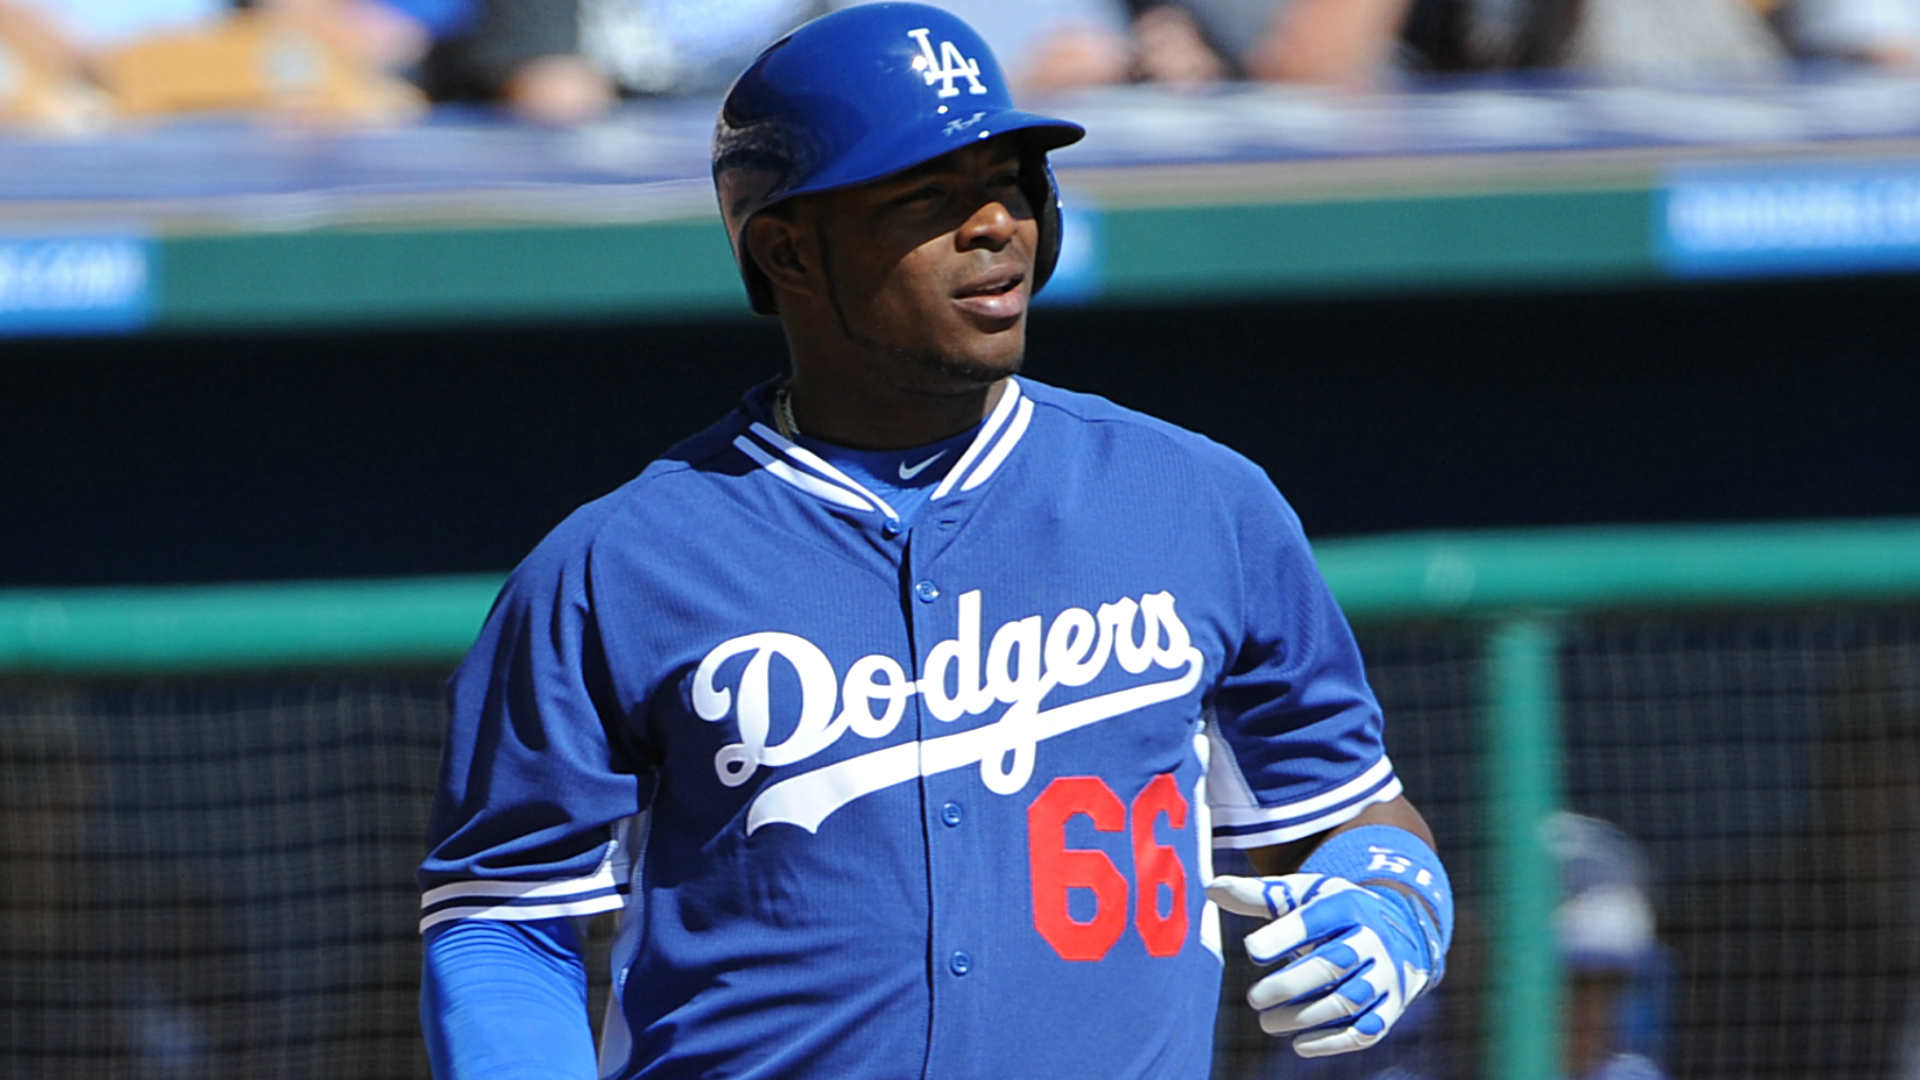 Yasiel Puig misses third game, Dodgers concerned